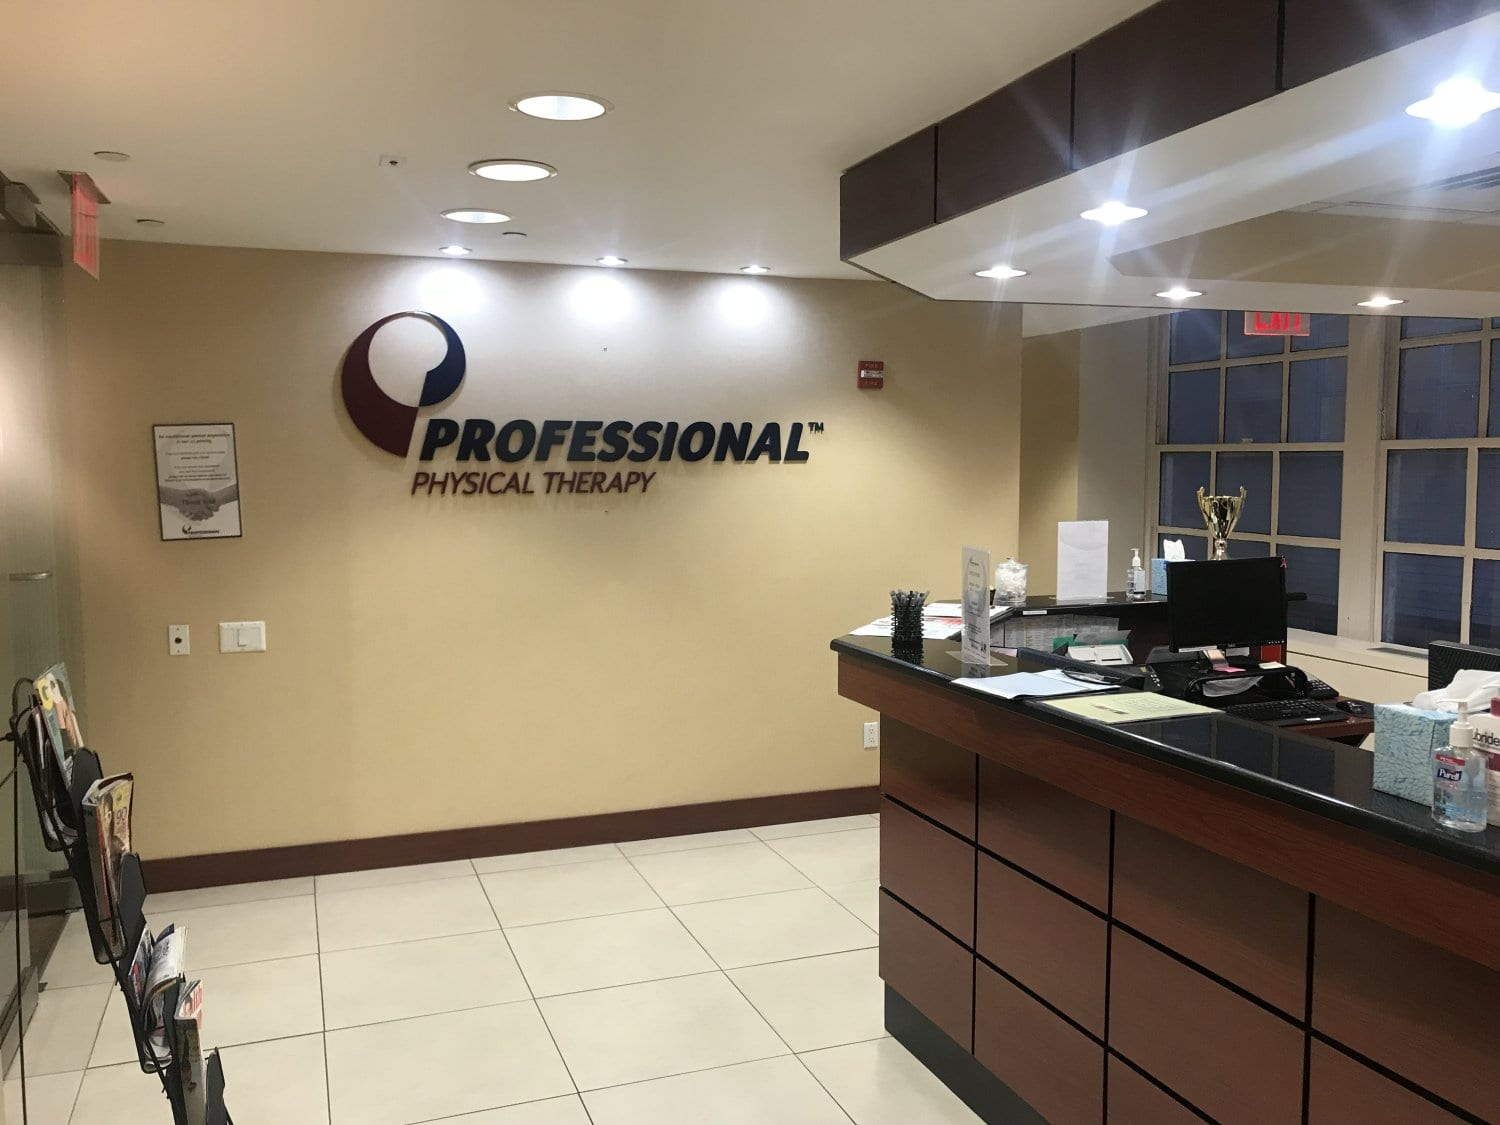 An image of the front desk where patients check in at our physical therapy clinic in Manhattan, New York City, Midtown East.